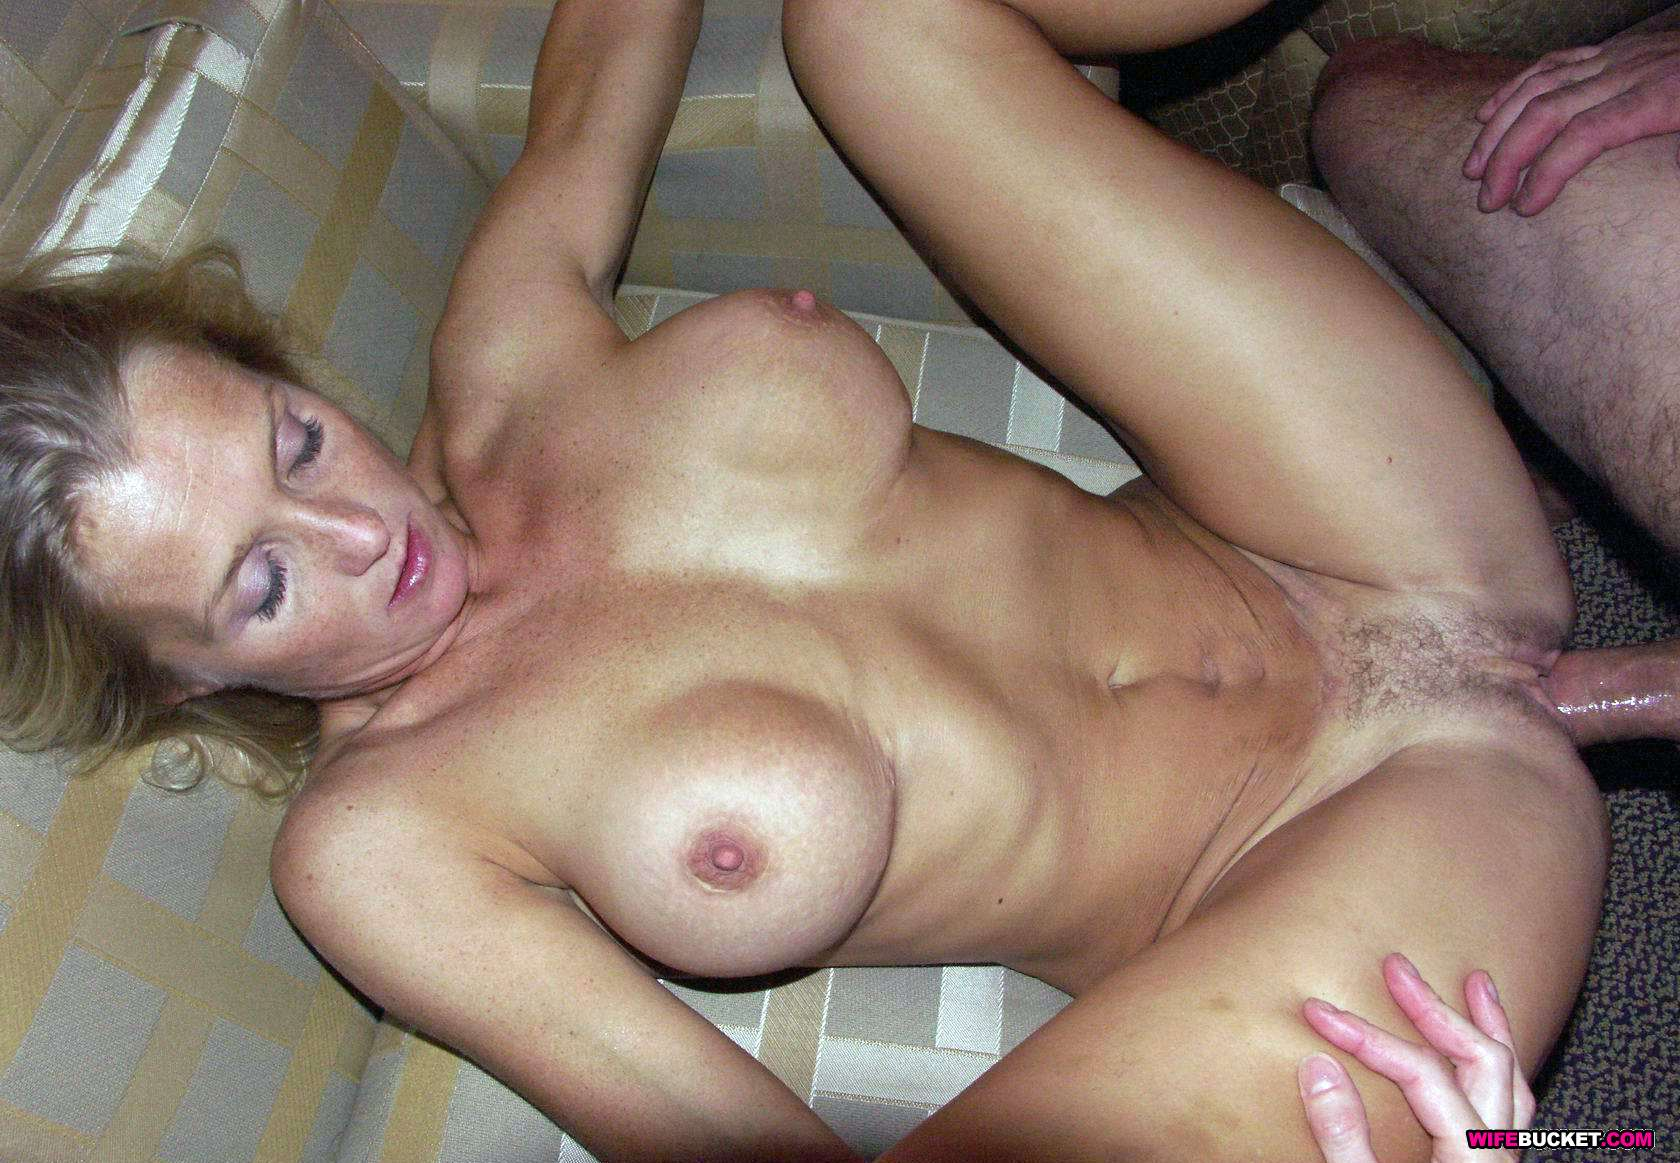 Mature amateur swinger fucking topic simply